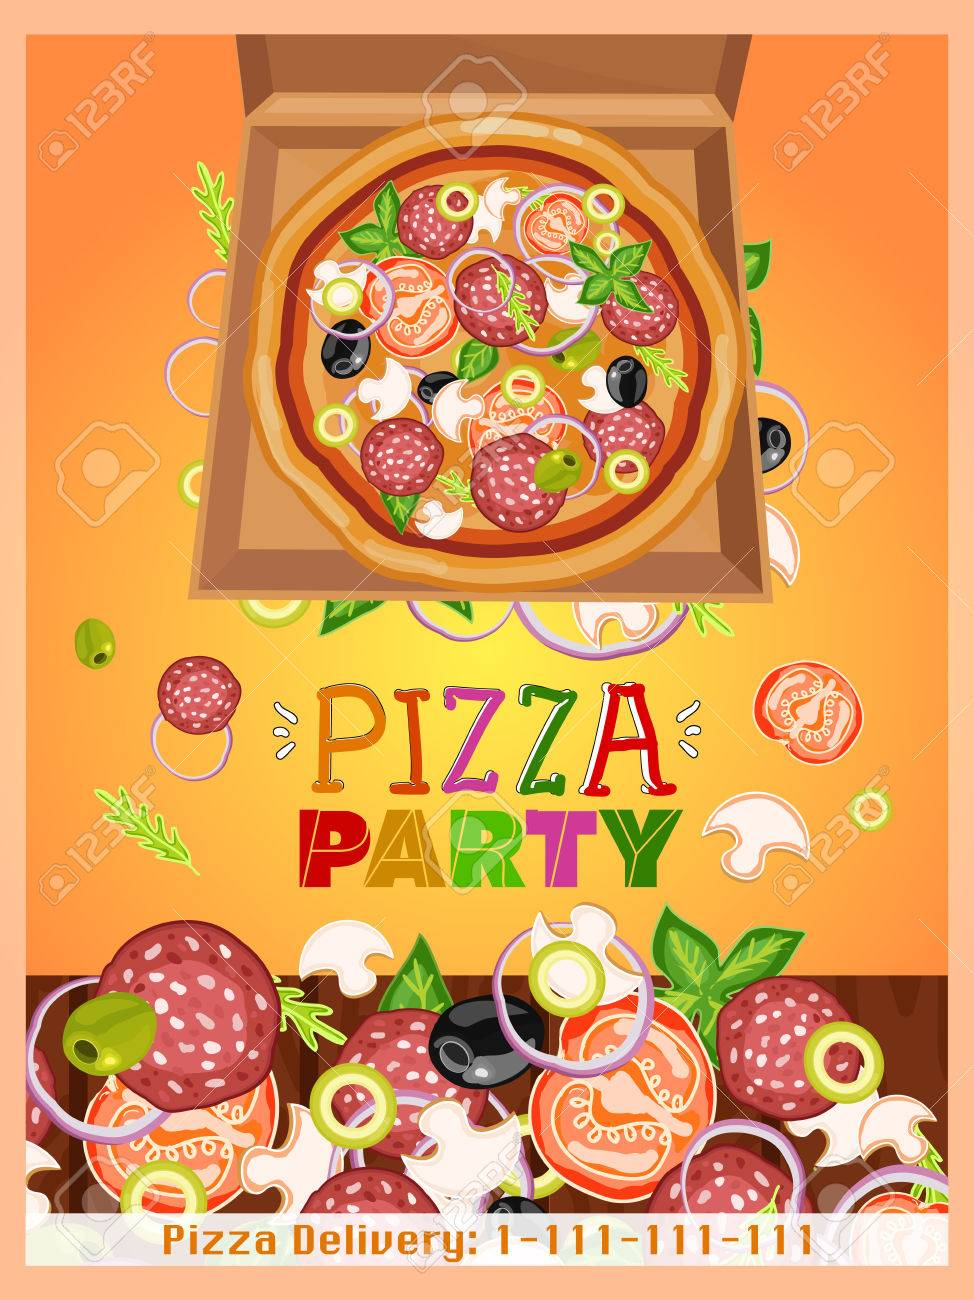 pizza party template fresh ingredients for pizza design template hand drawn vector illustration stock vector